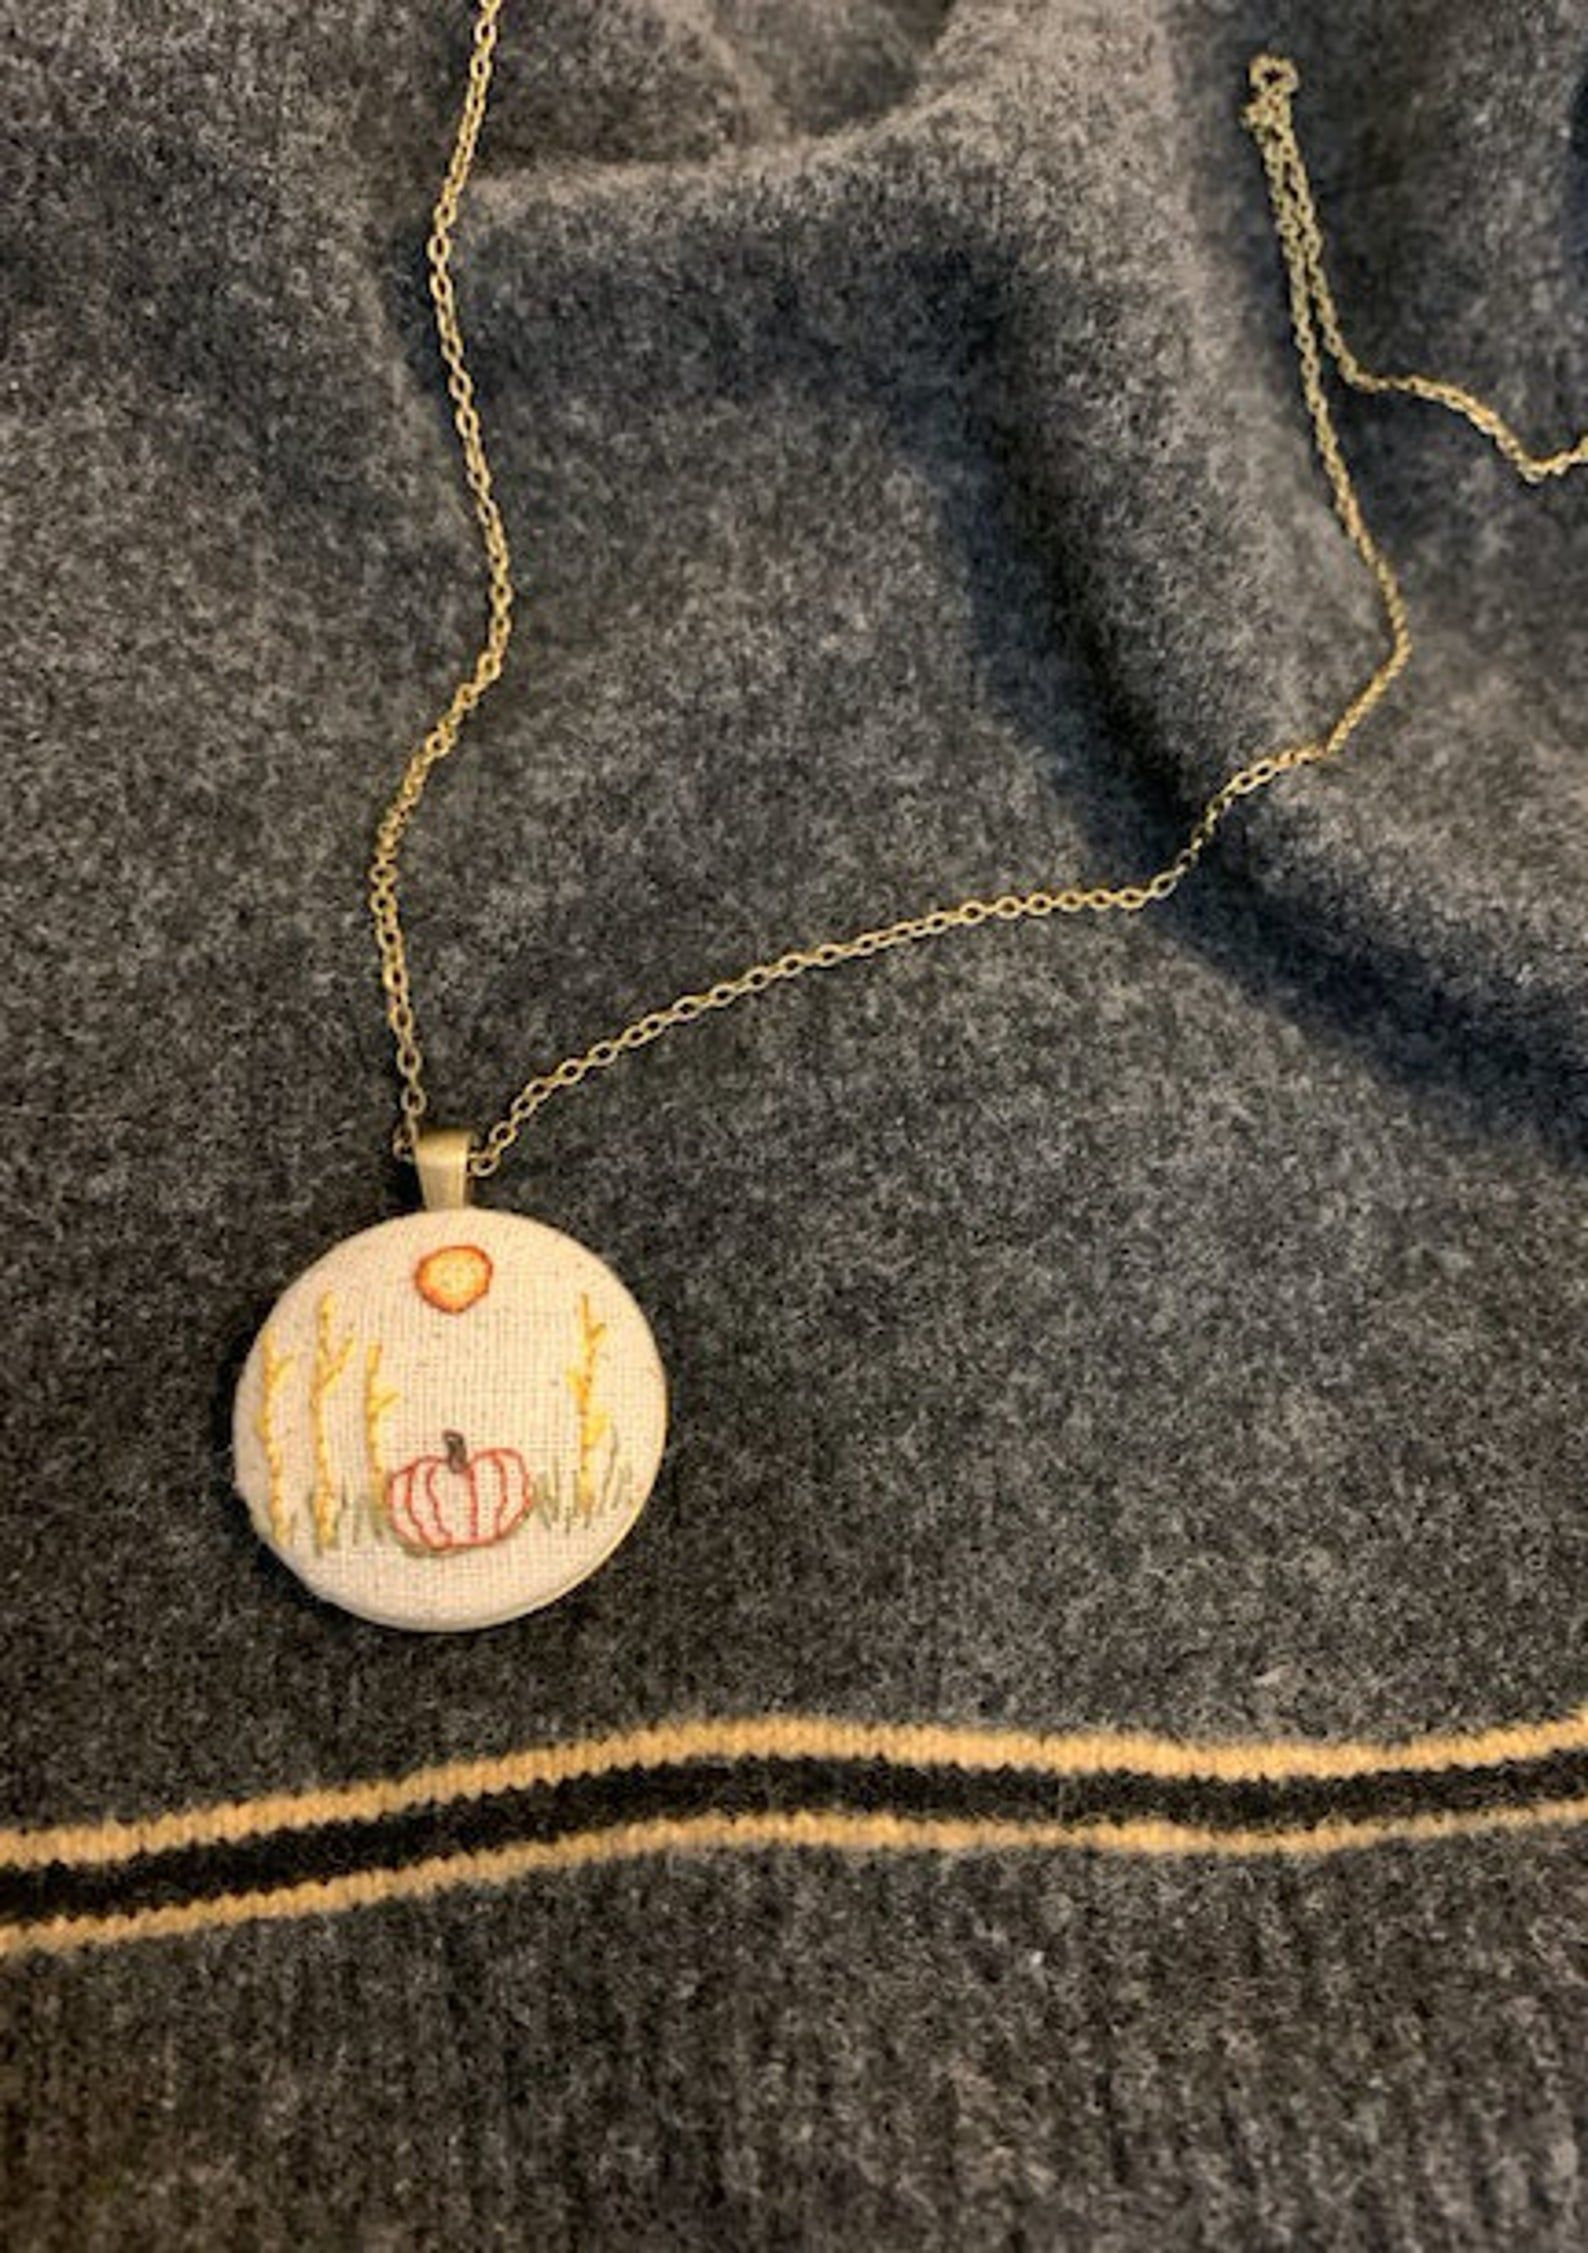 All pumpkin everything, including this mini embroidered pendant necklace featuring a pumpkin.